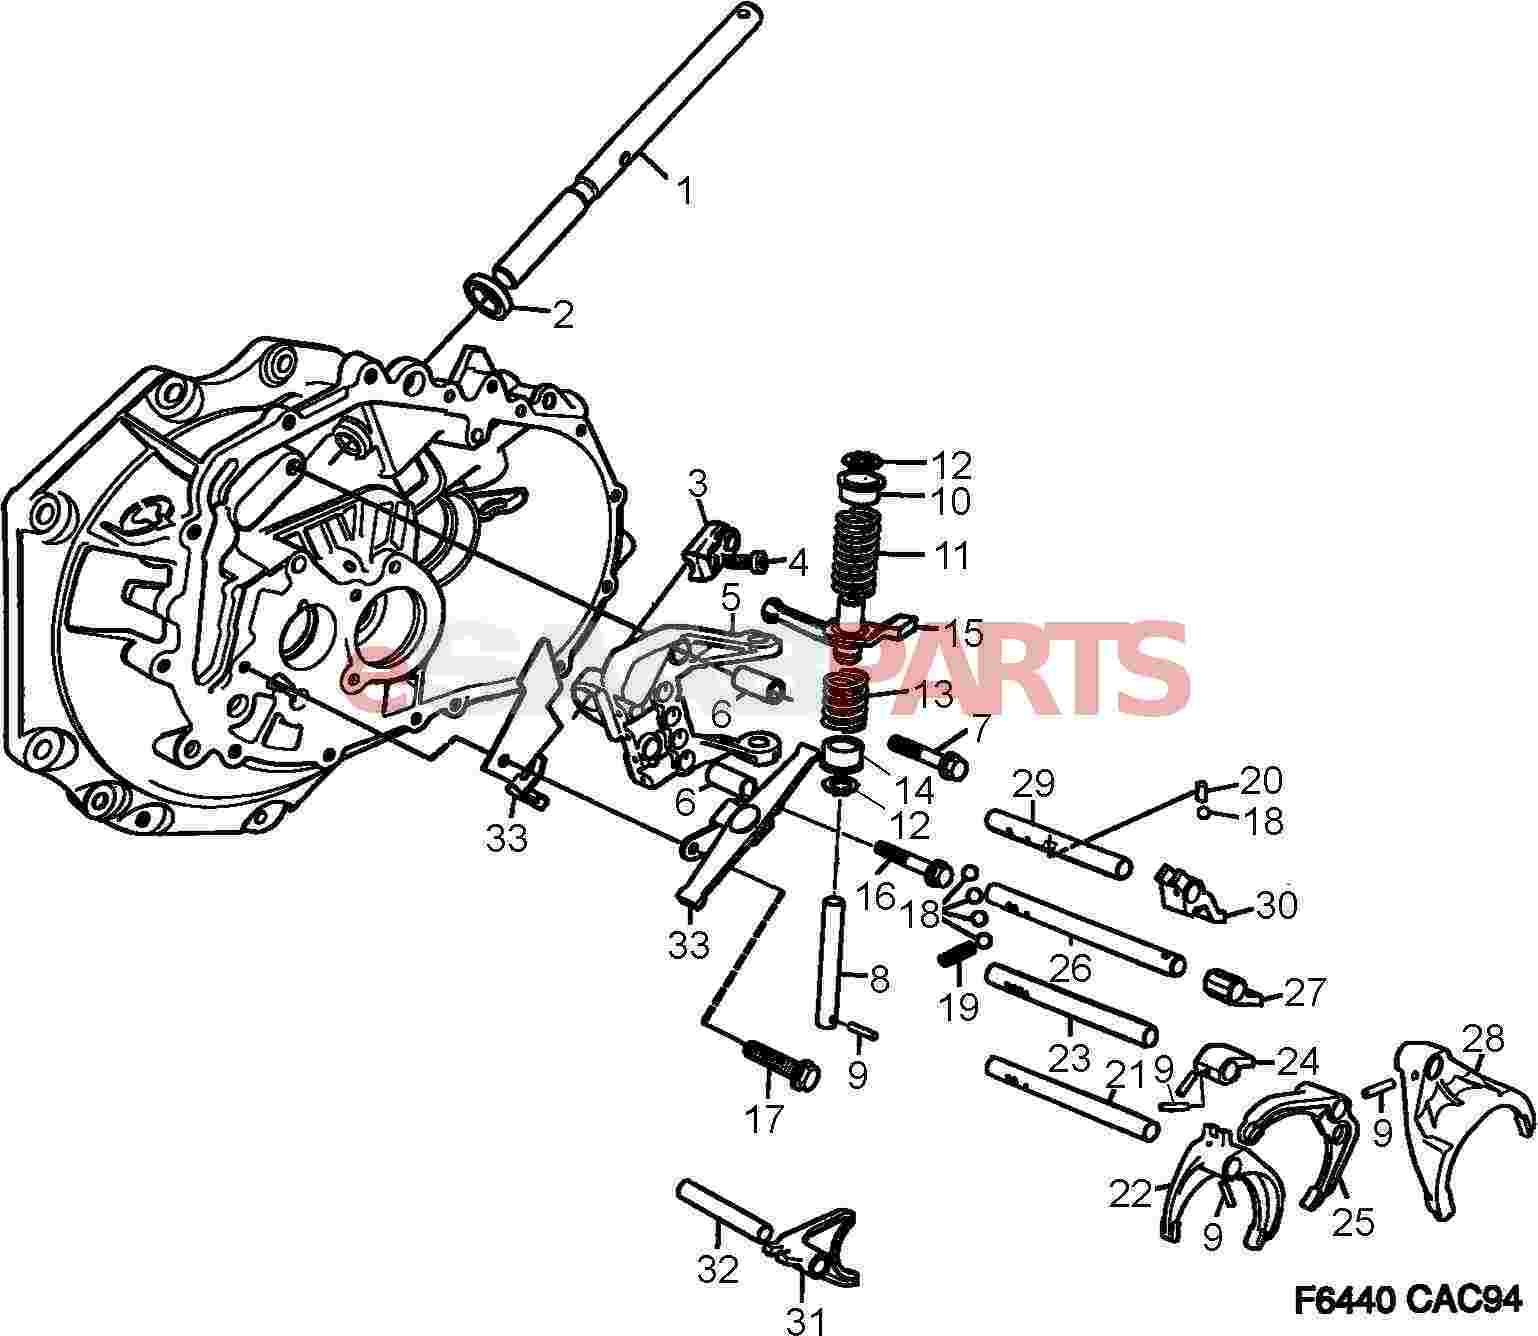 Service manual [1998 Saab 9000 Manual Transmission Hub